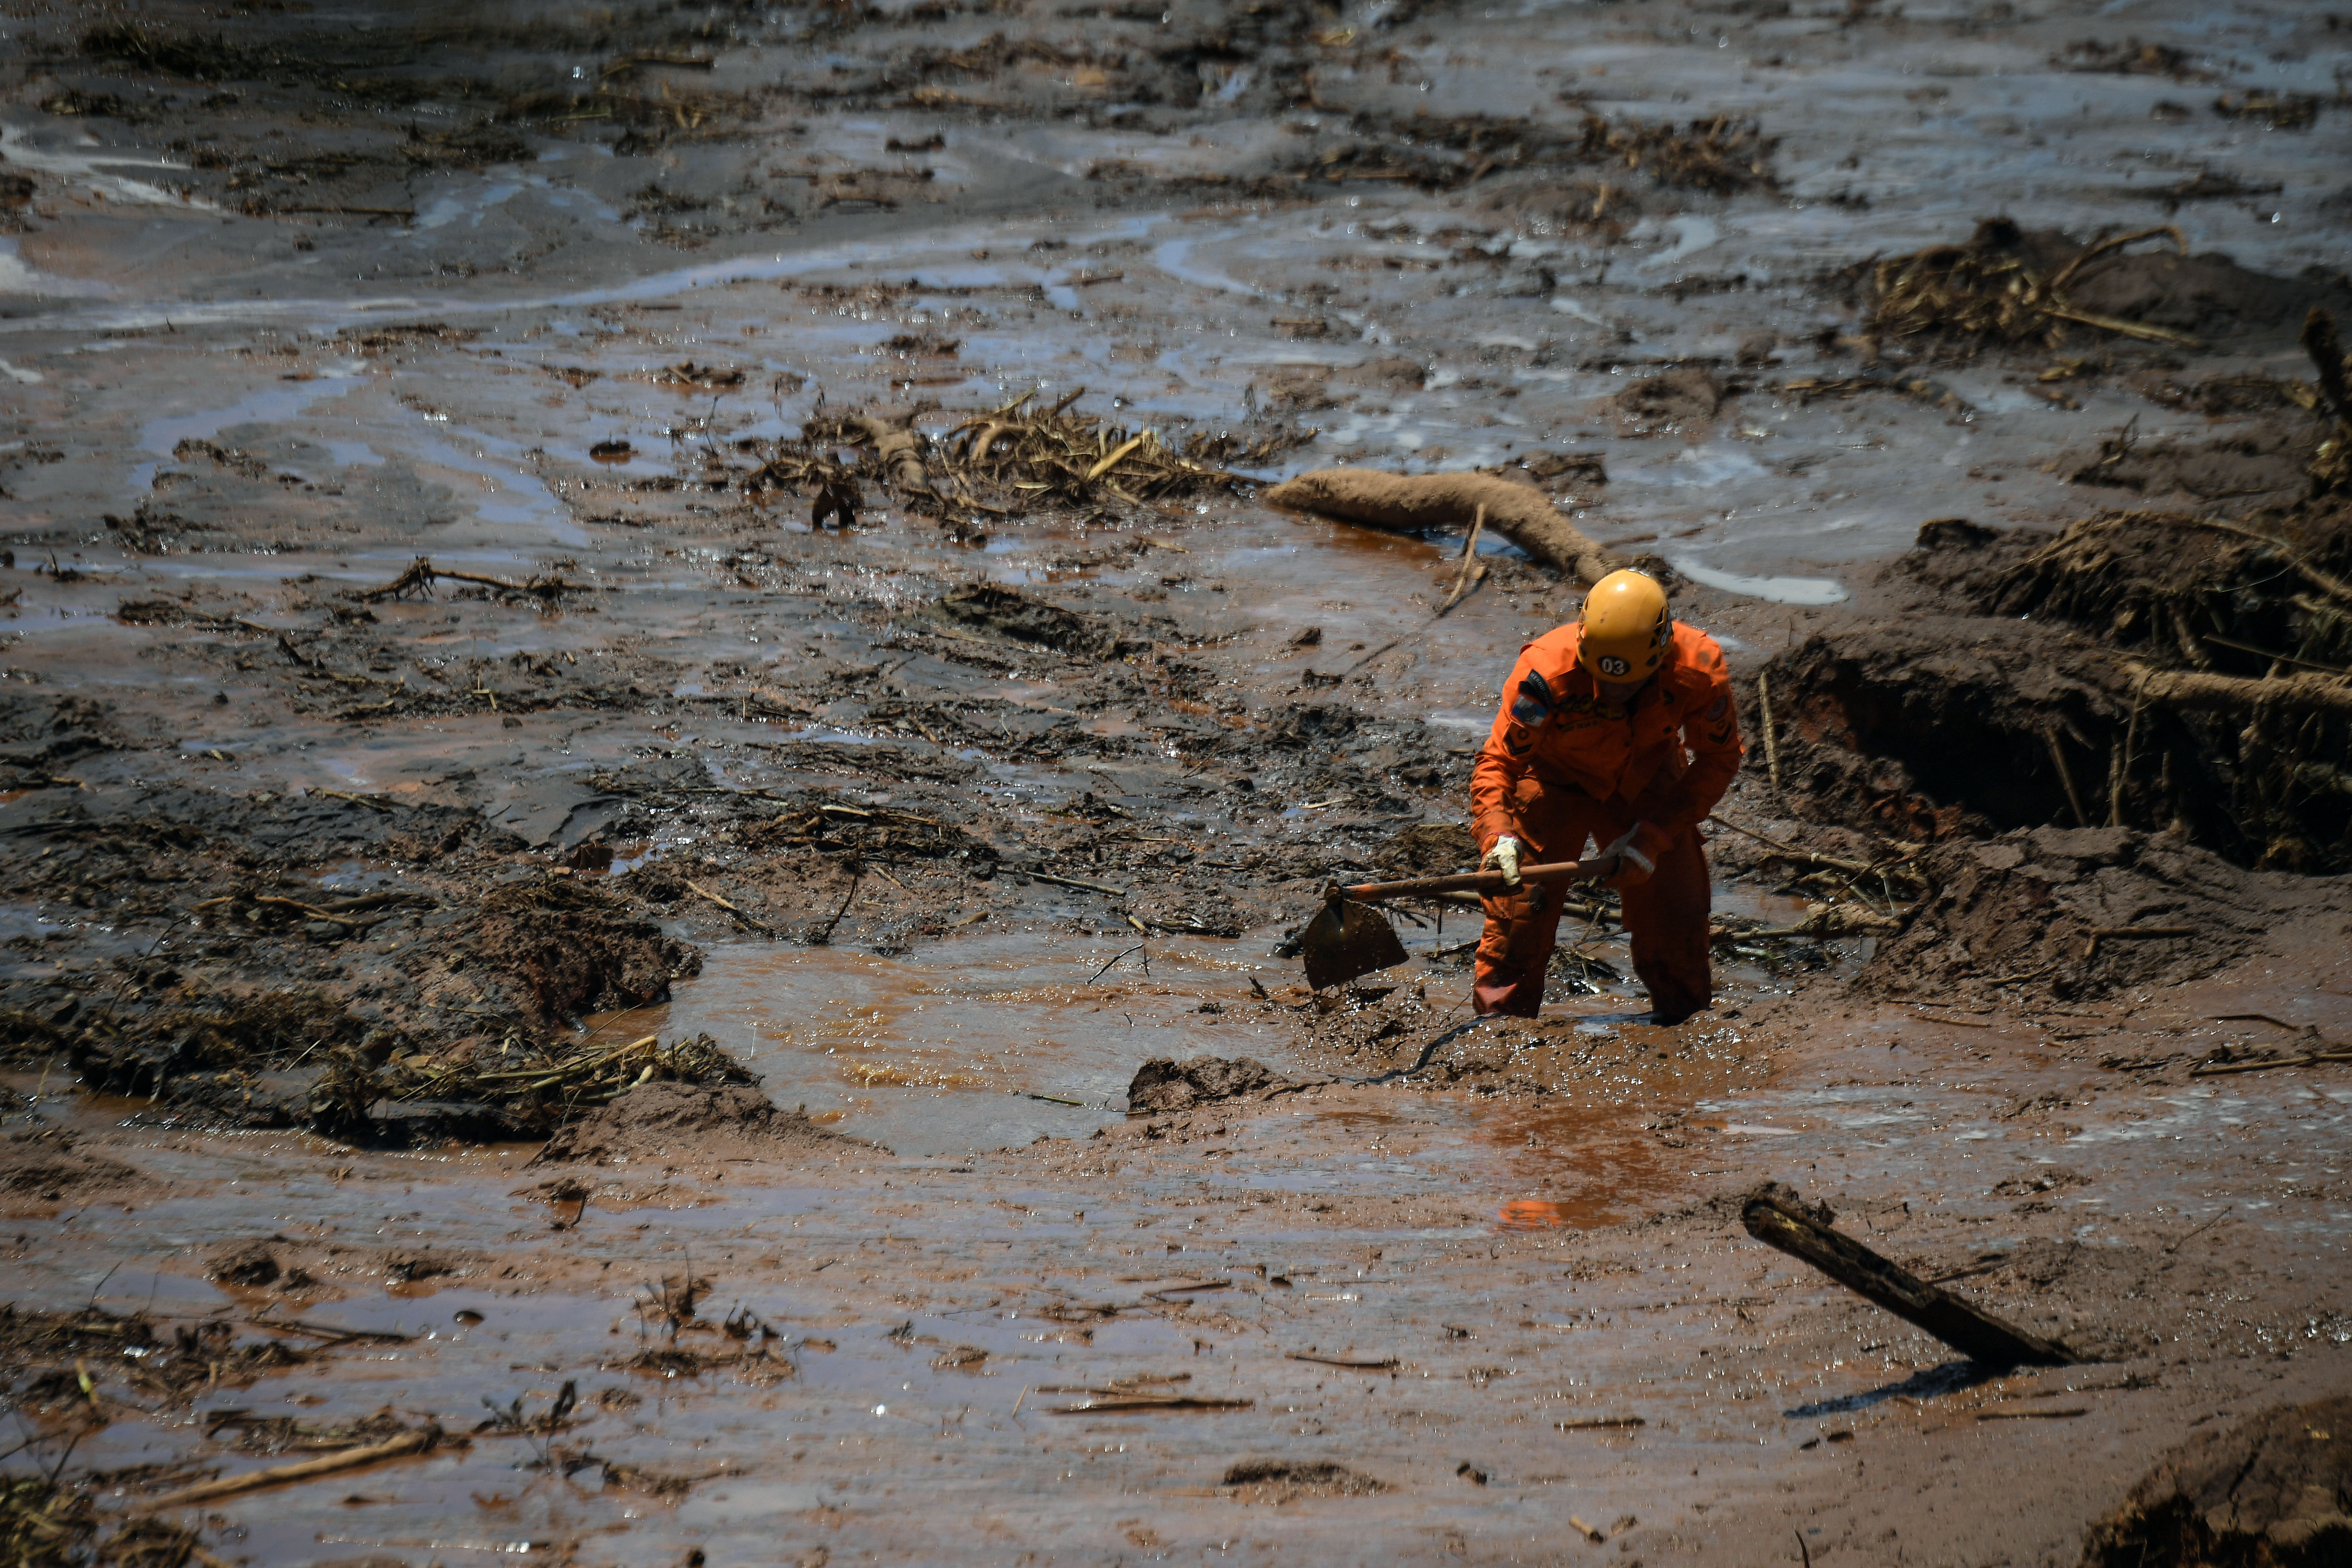 A rescuer works in the search for victims, four days after the collapse of a dam at an iron-ore mine belonging to Brazil's giant mining company Vale near the town of Brumadinho, state of Minas Gerias, southeastern Brazil, on January 28, 2019. - The search for survivors intensified on Monday, on its fourth day, with the support of an Israeli contingent, after communities were devastated by a dam collapse that killed at least 60 people at a Brazilian mining complex -- with hopes fading for 292 still missing. A barrier at the site burst on Friday, spewing millions of tons of treacherous sludge and engulfing buildings, vehicles and roads. (Photo by Mauro Pimentel / AFP) (Photo credit should read MAURO PIMENTEL/AFP/Getty Images)